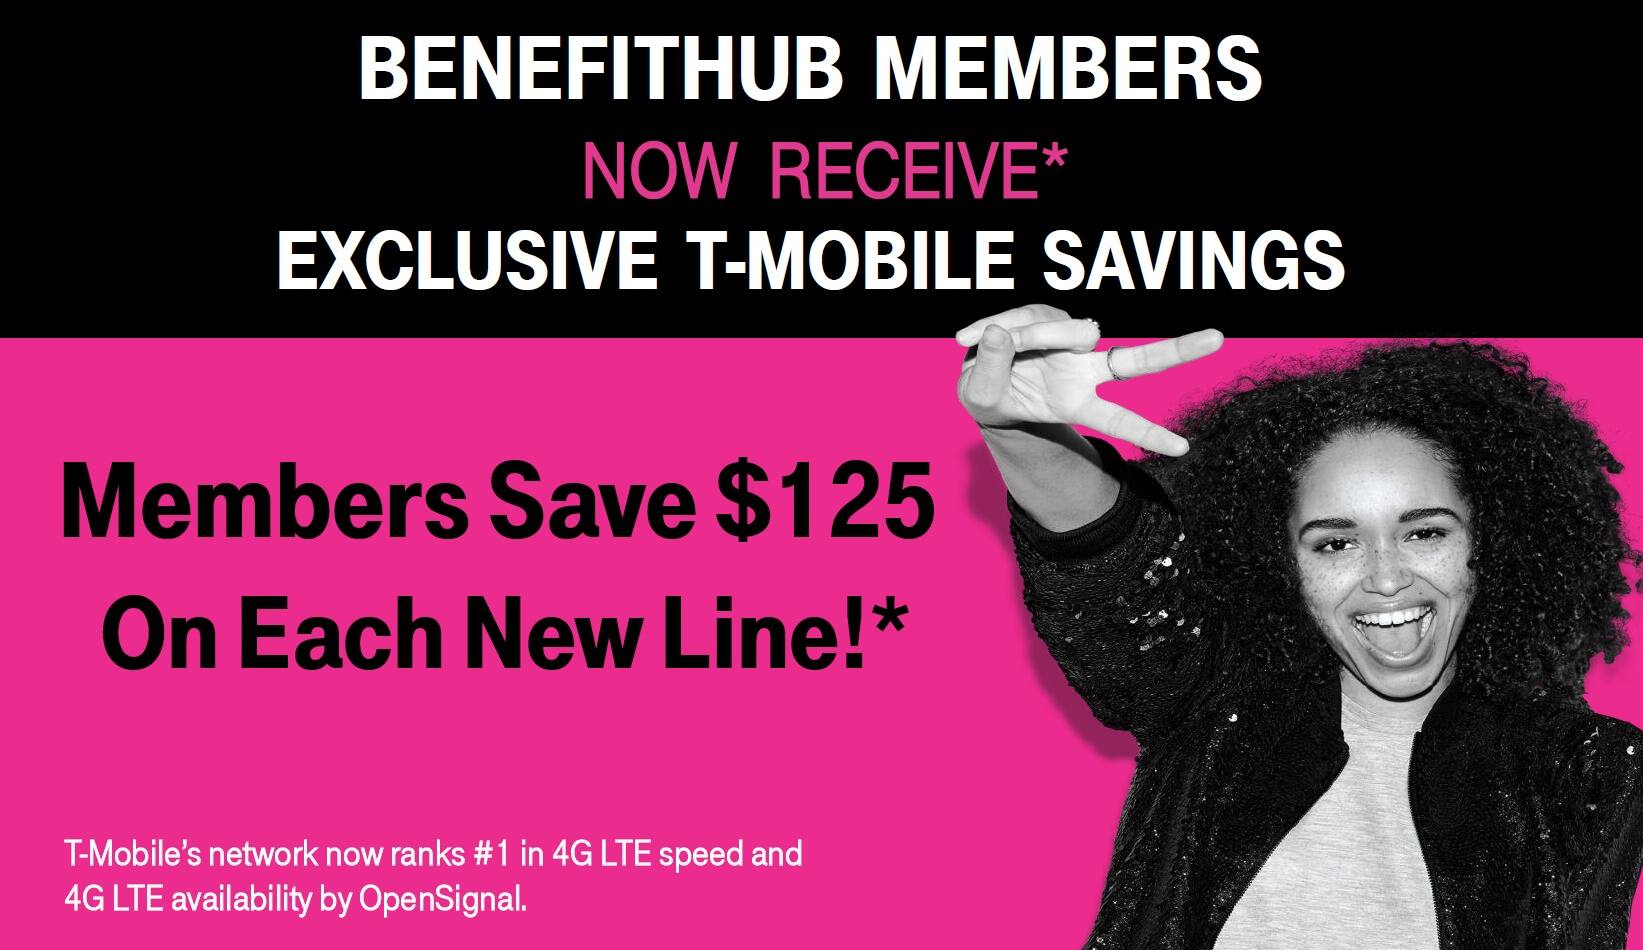 T-Mobile $100 Gift Card plus Free Sim Card - Plus Any Current Promos including current Note 8 BOGO